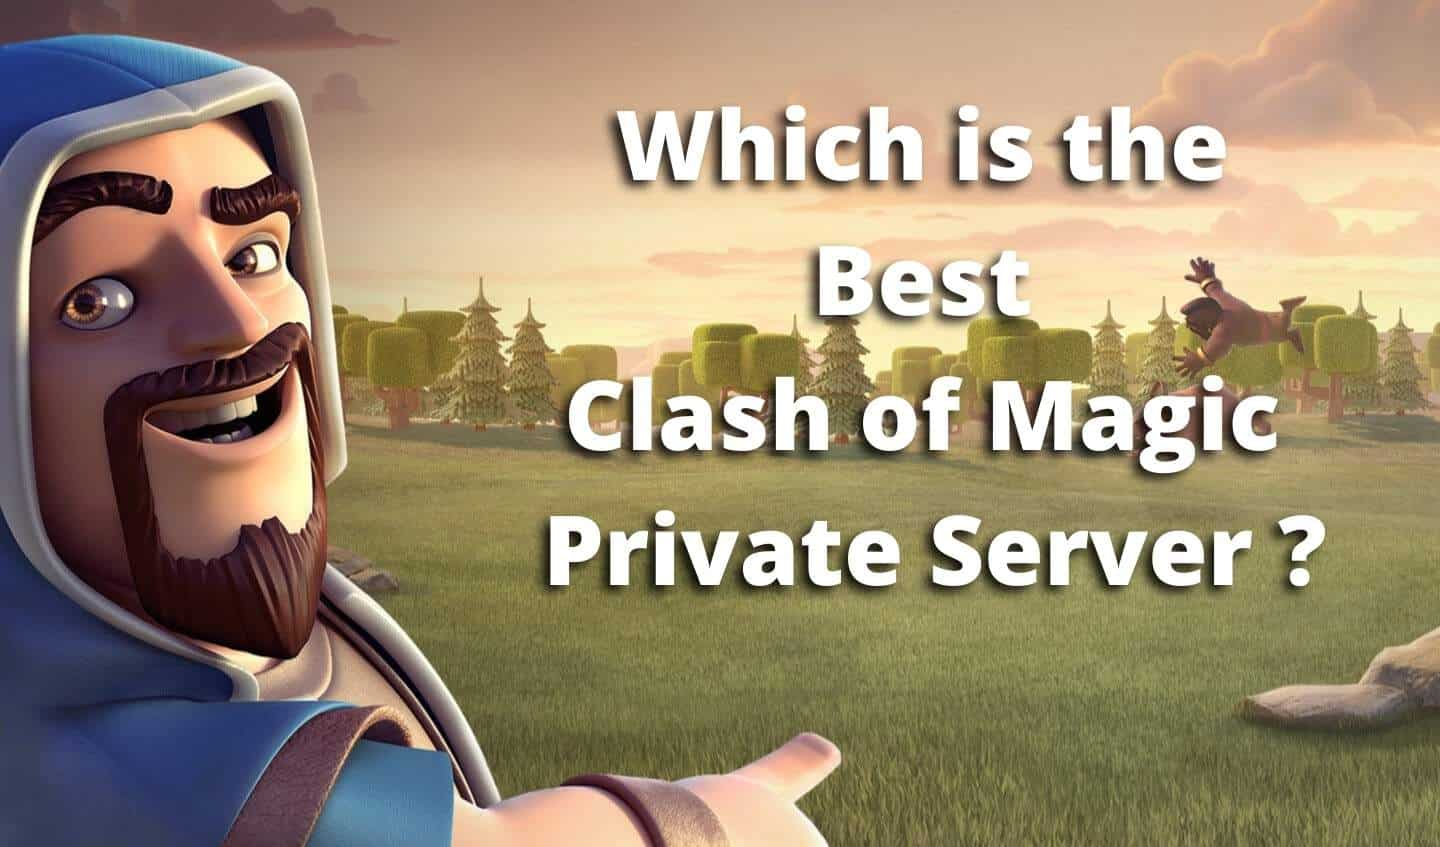 which is best clash of magic private server